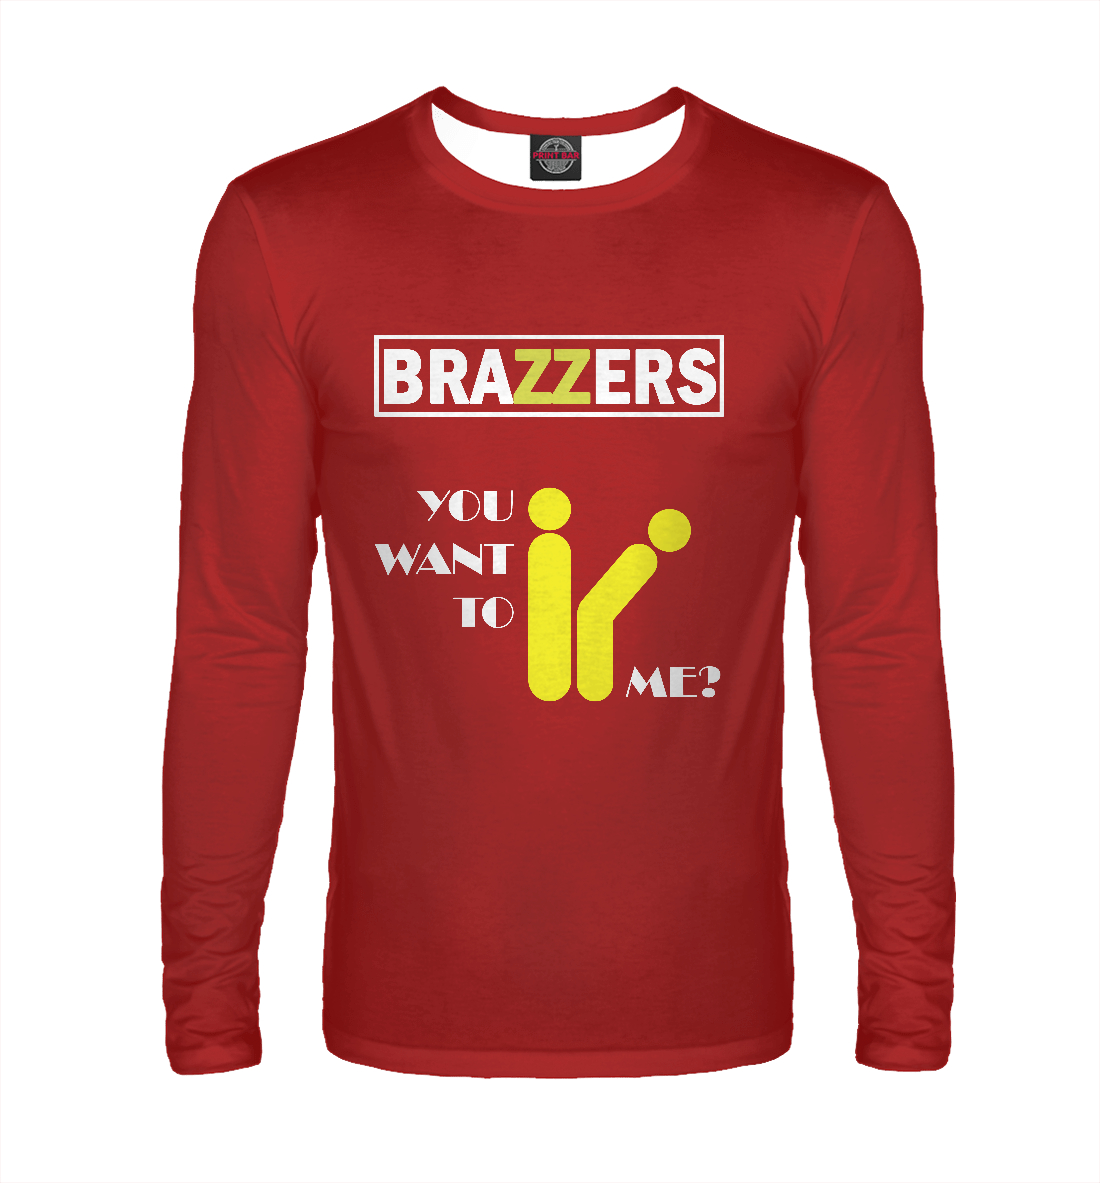 Brazzers you want to me ? спрей me to you снег 250мл 17см mty n01004